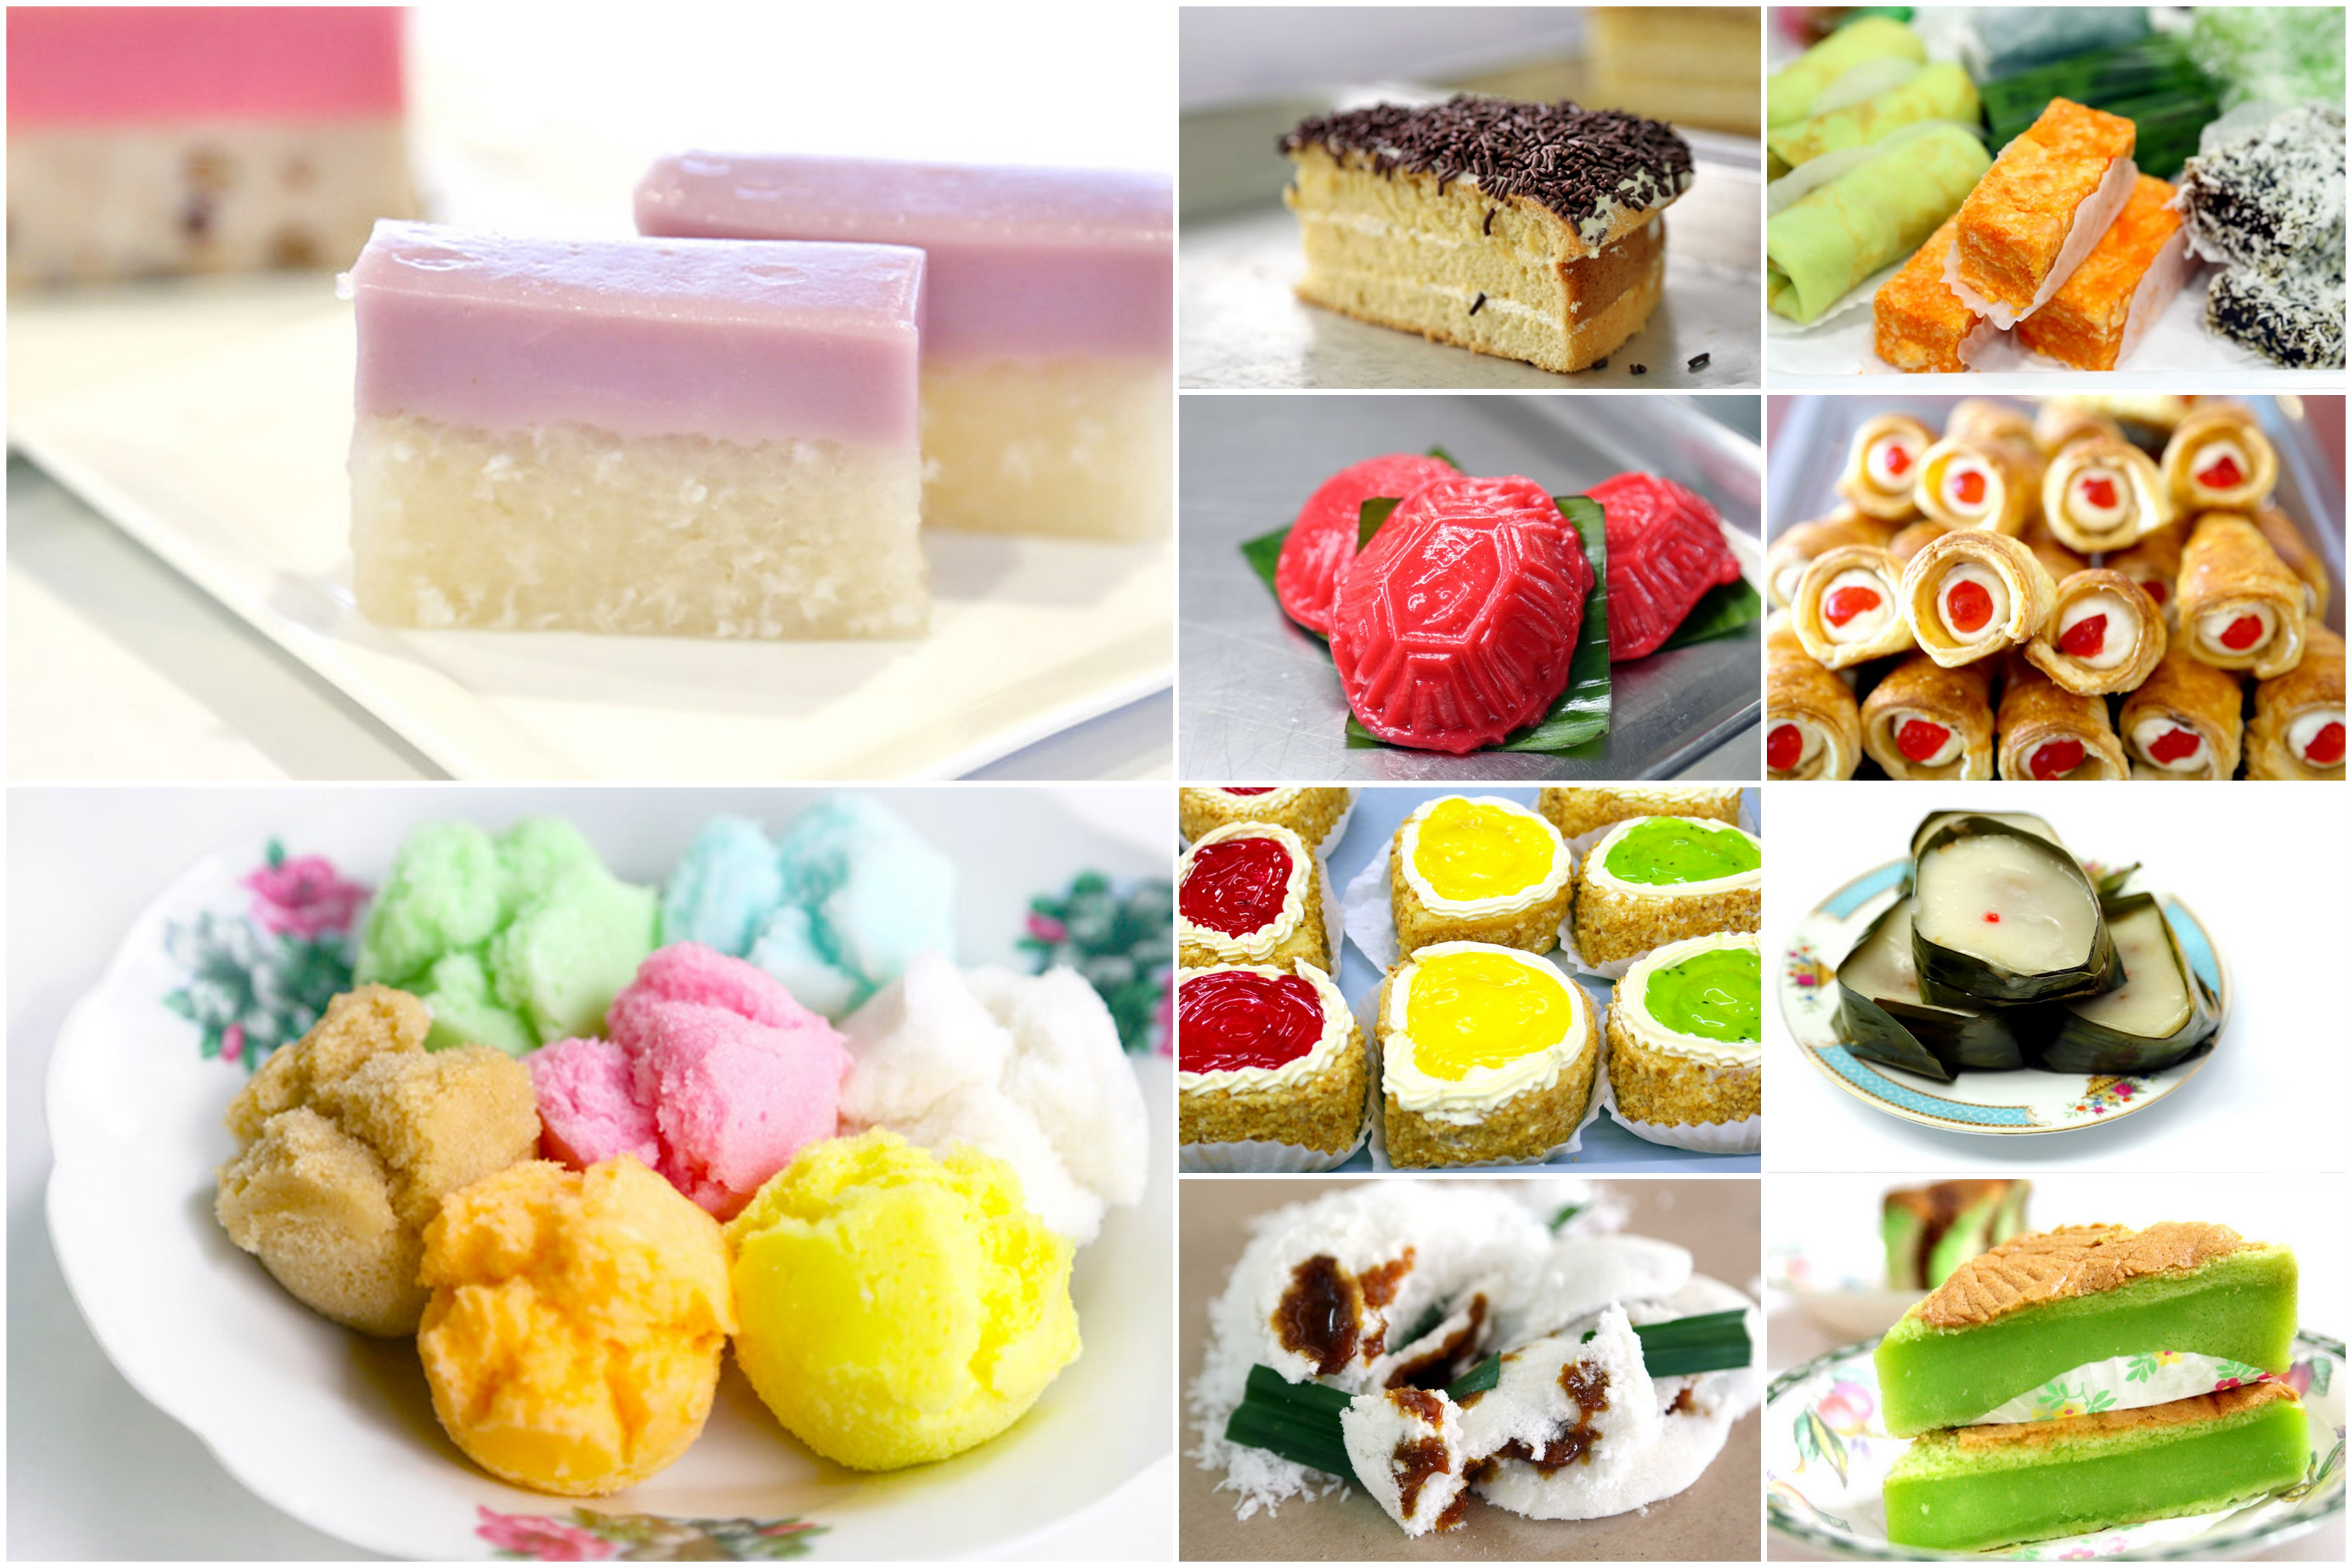 10 Singapore Heritage Bakeries and Shops - For Old School Cakes And Kueh